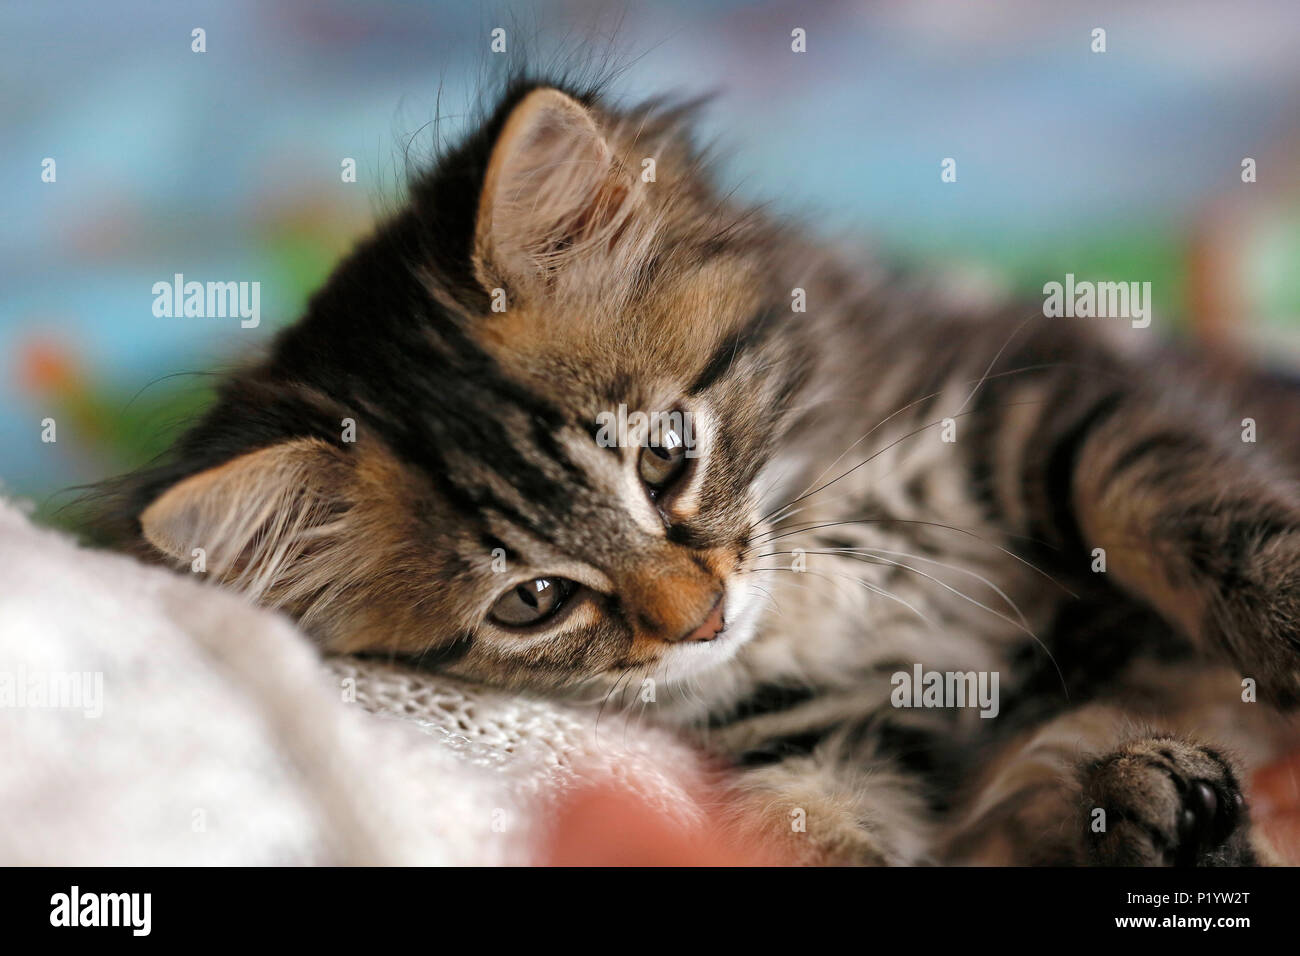 Seine et Marne. Close up of a female kitten aged 9 weeks lying on a bed. Norwegian cat breed. - Stock Image